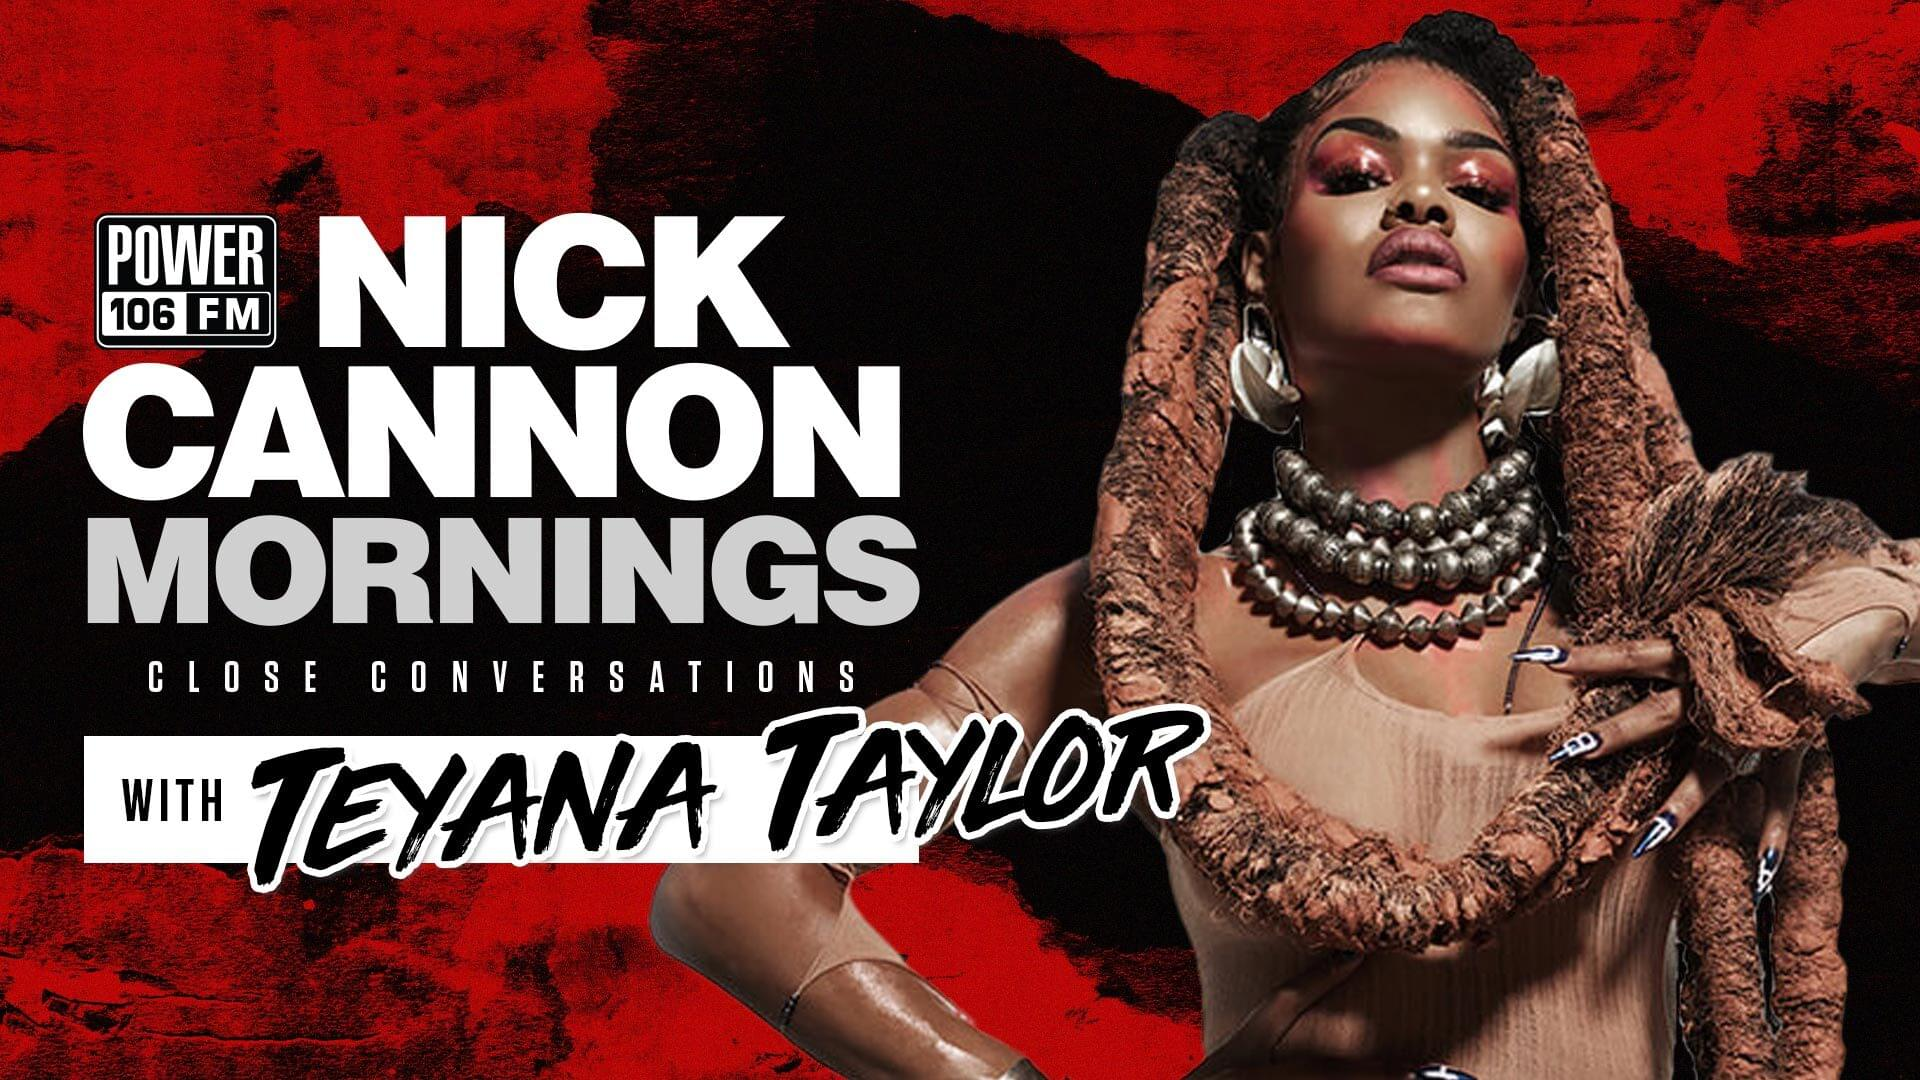 Teyana Taylor Talks New Album, Working With Lauryn Hill and Erykah Badu, Being an Activist & More